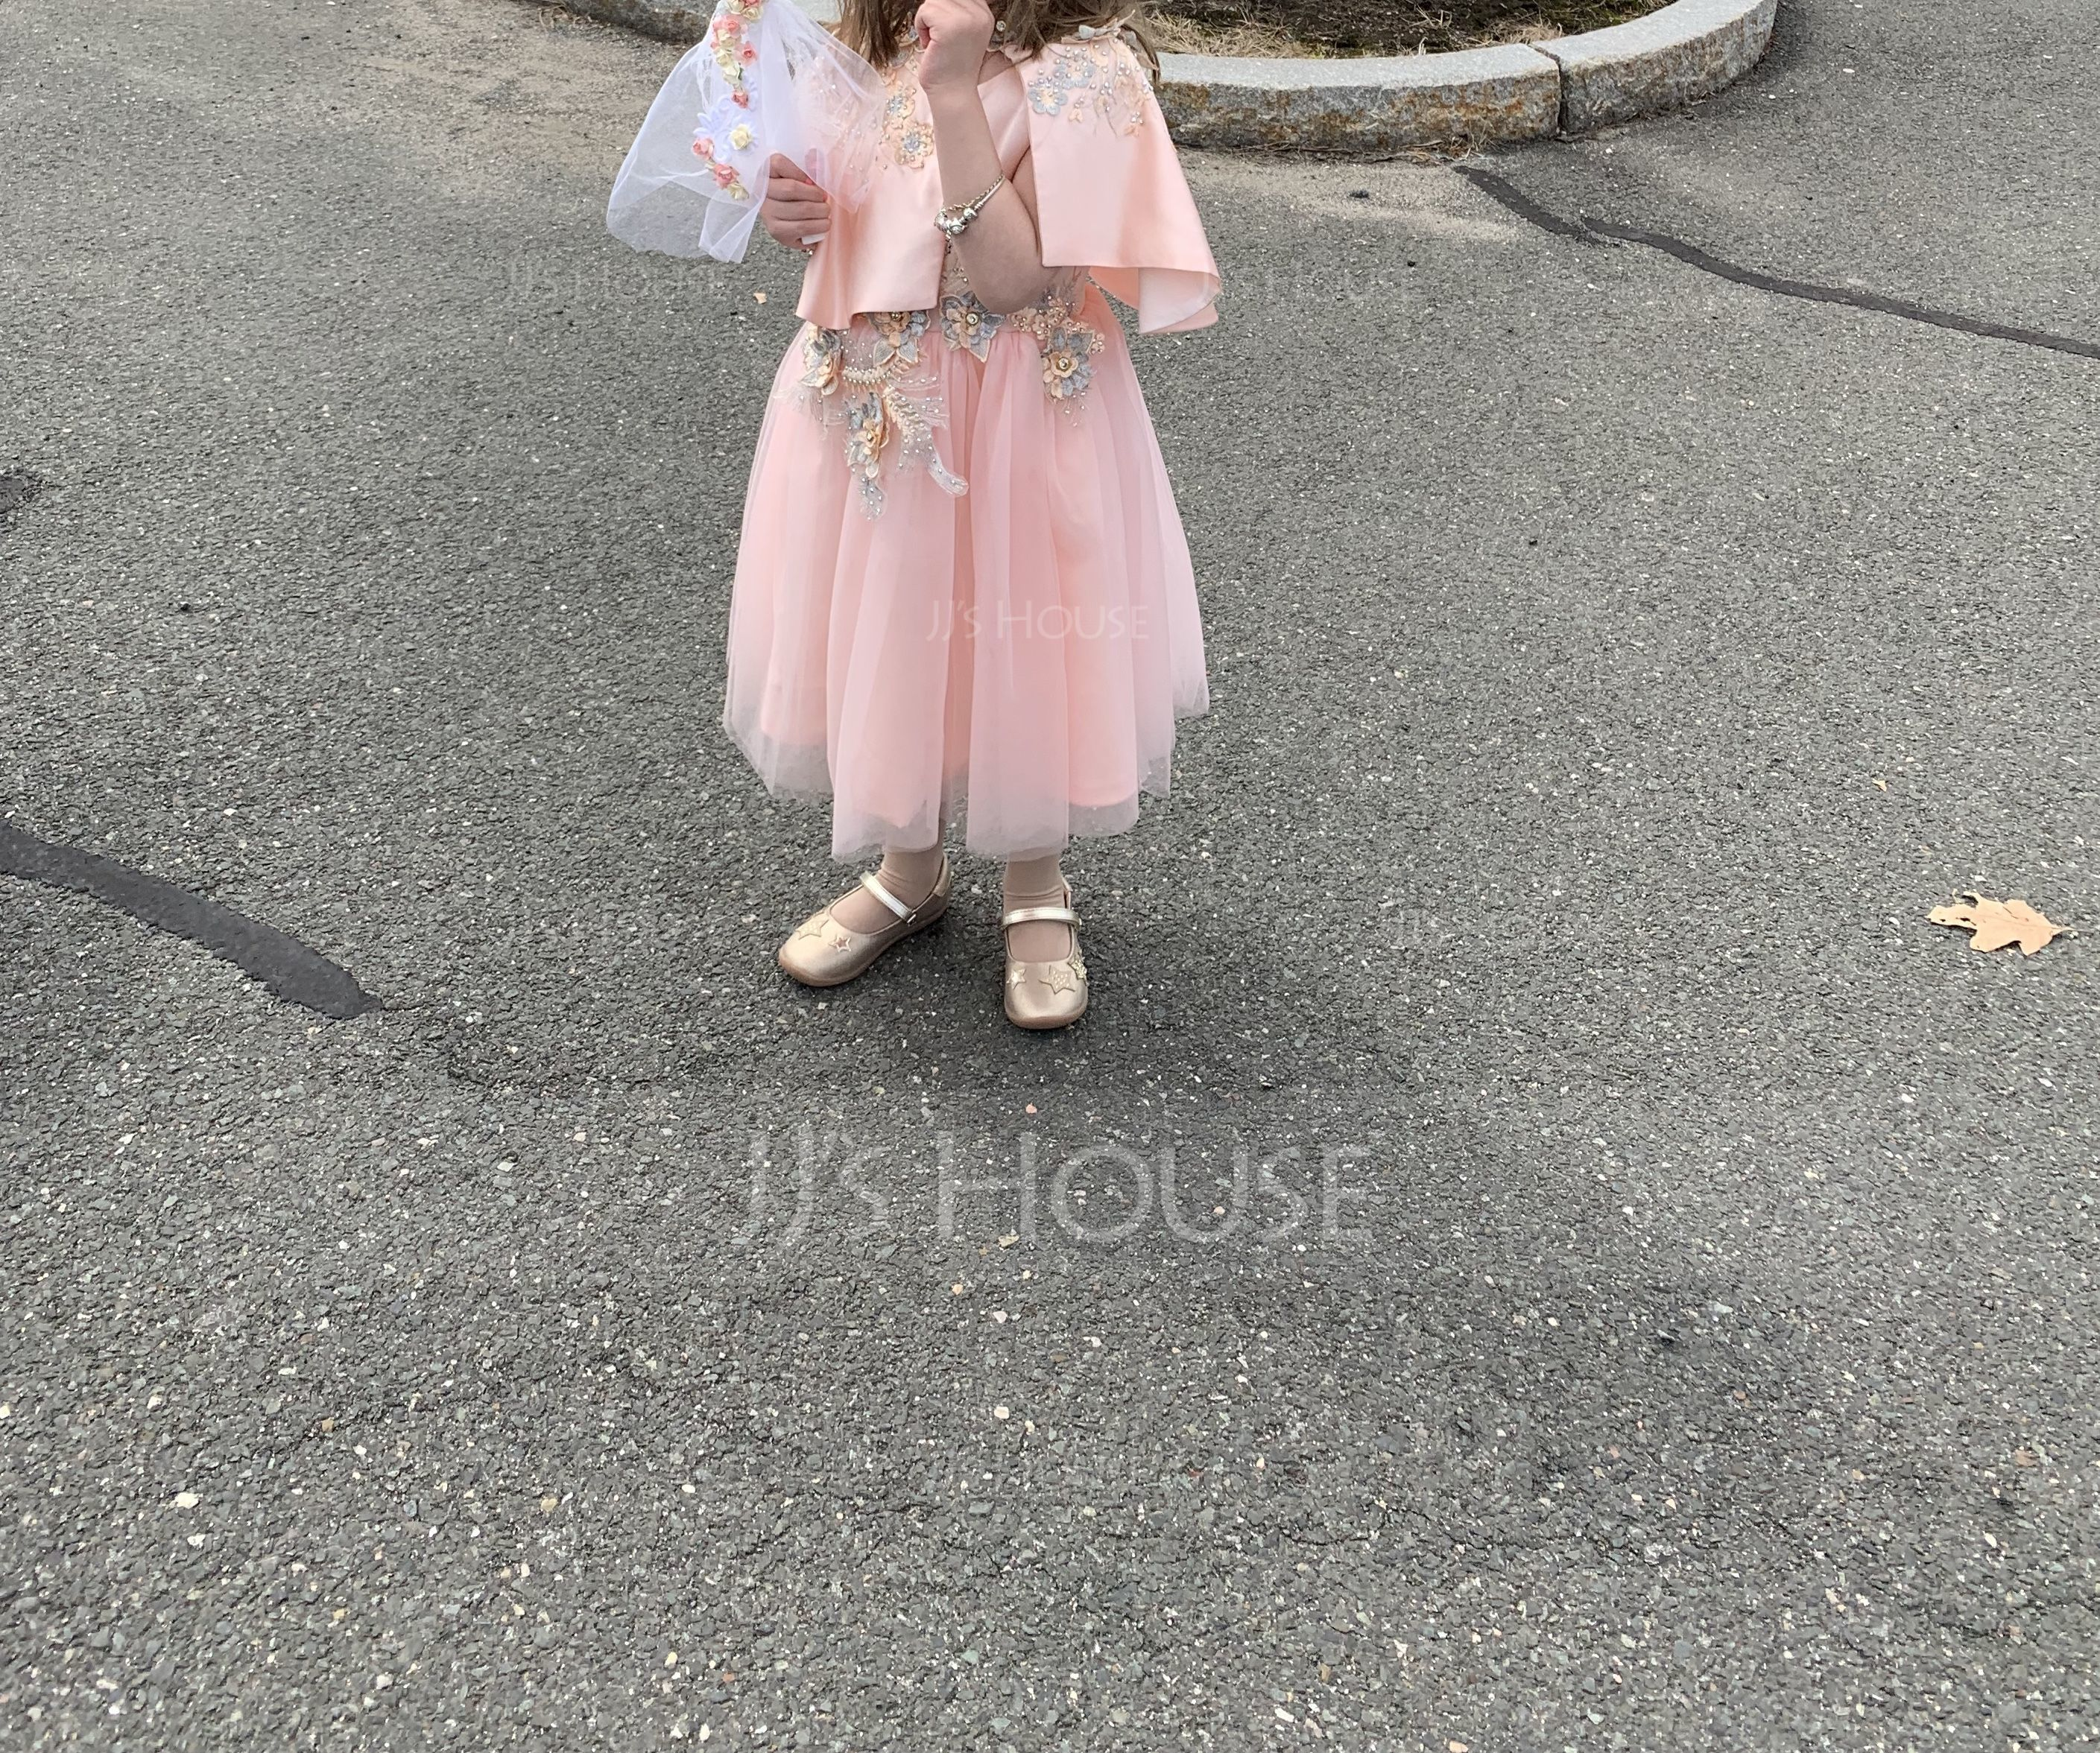 A-Line/Princess Knee-length Flower Girl Dress - Tulle 1/2 Sleeves Scoop Neck With Flower(s) (010164606)